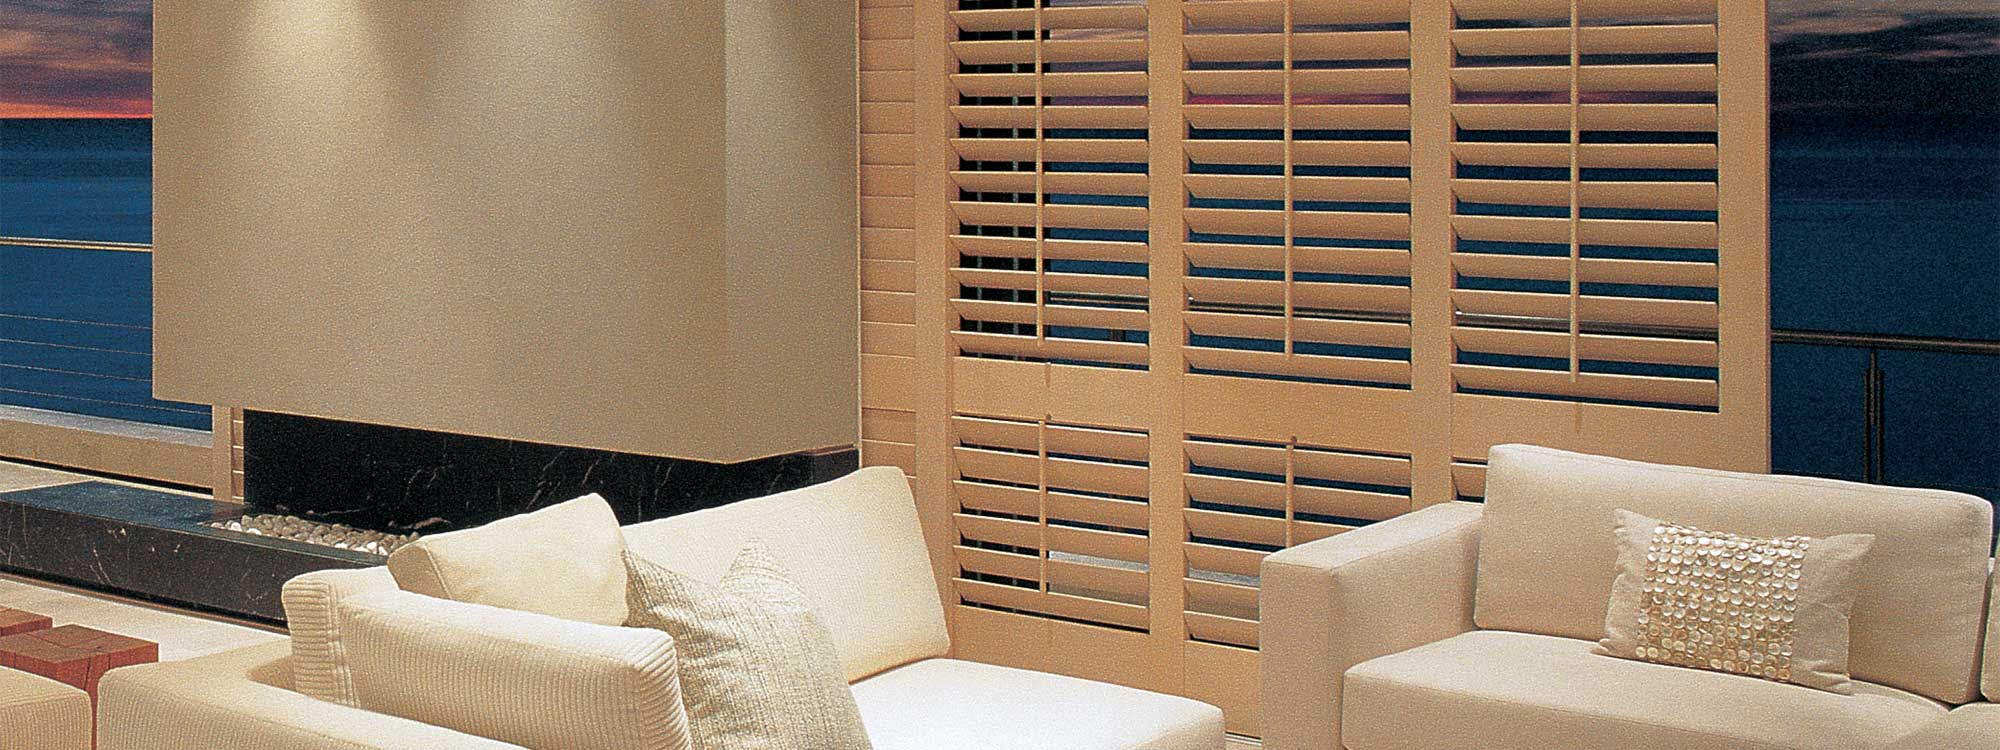 Normandy-shutters-living-area-interior